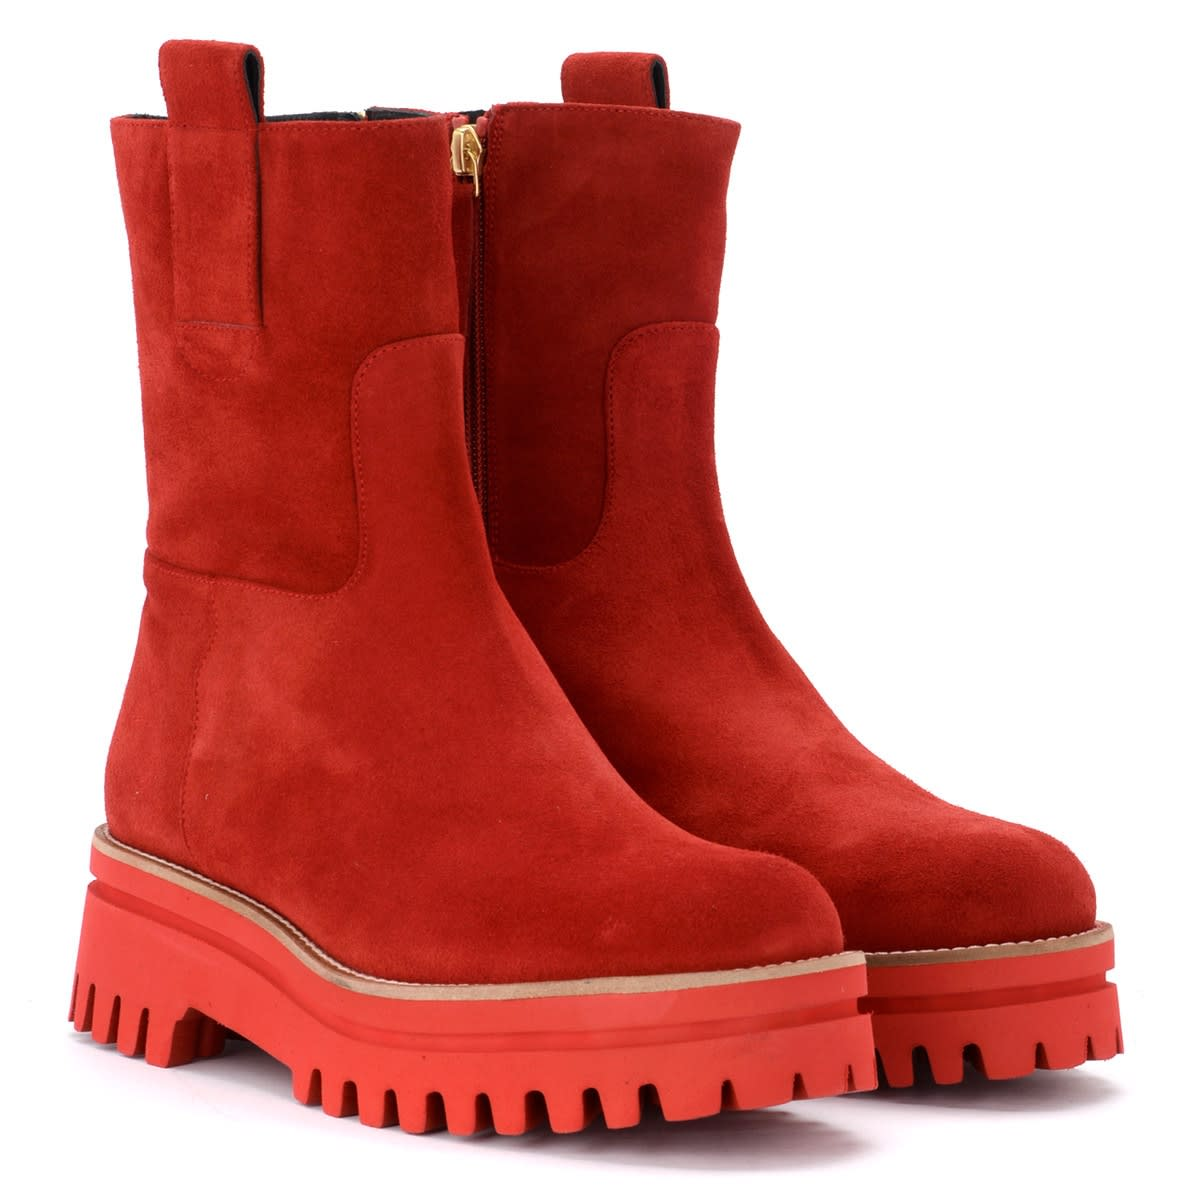 buy popular 4704c 6d44e Paloma Barcelò Ankle Boot In Red Suede With An Ultra-light Bottom